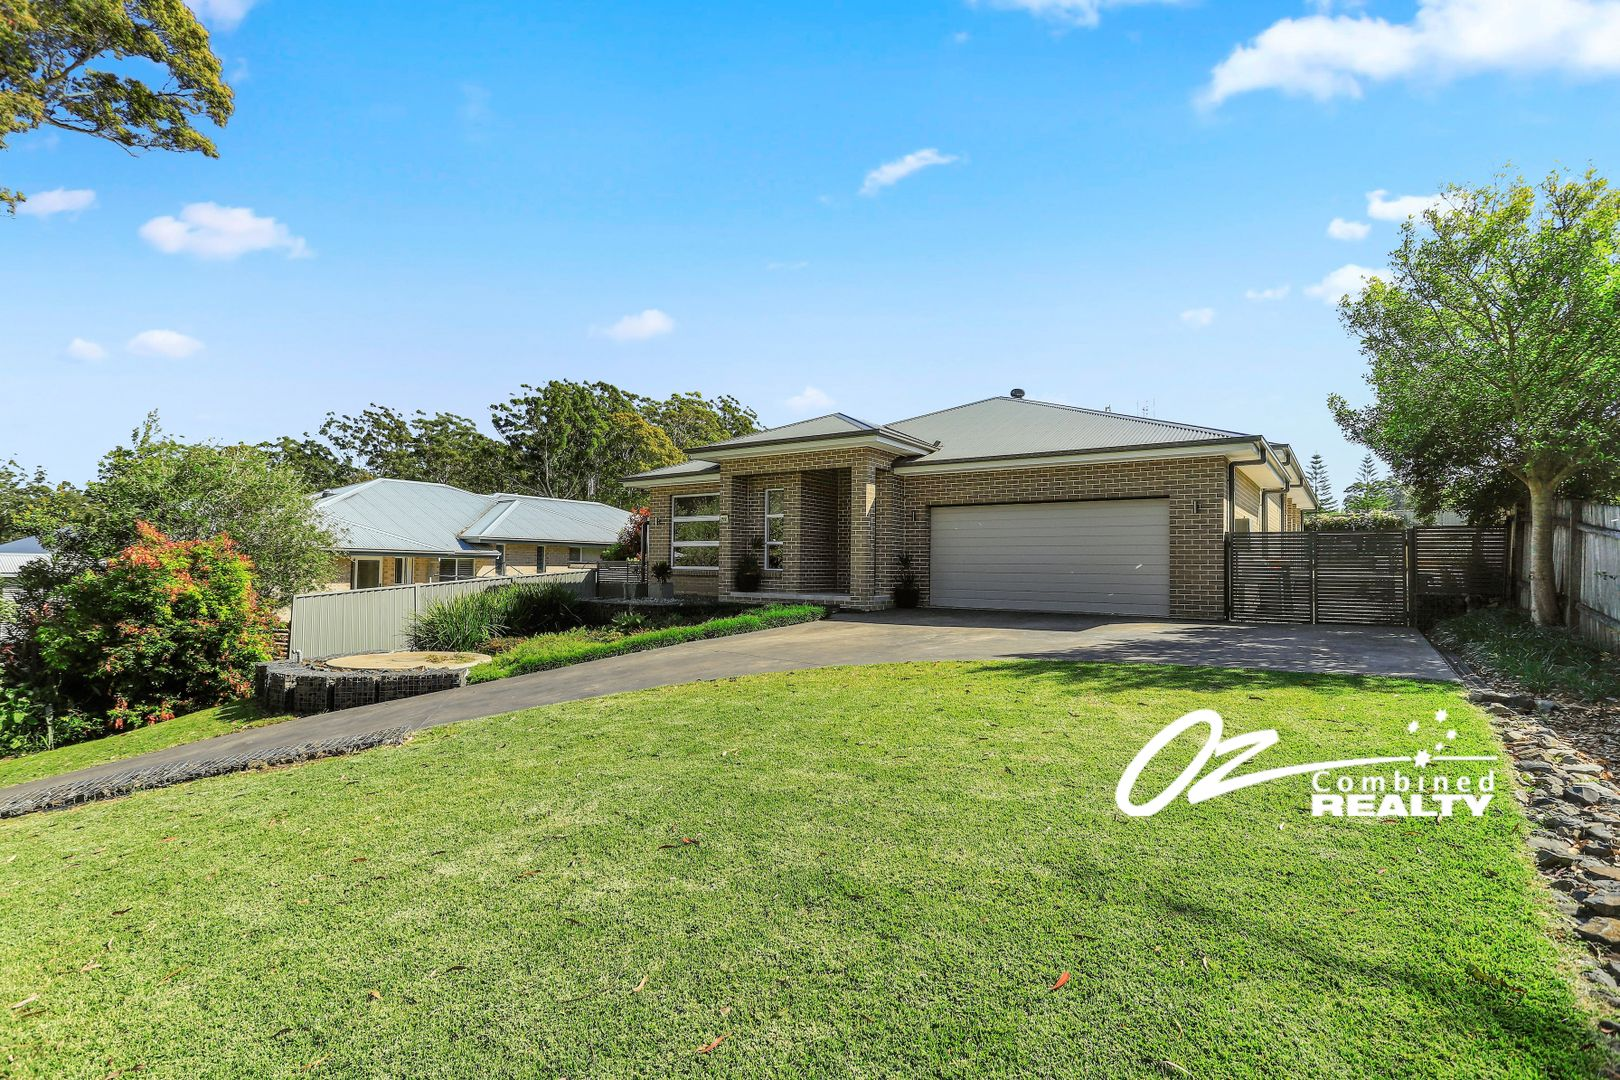 12 William Bryce  Road, Tomerong NSW 2540, Image 0